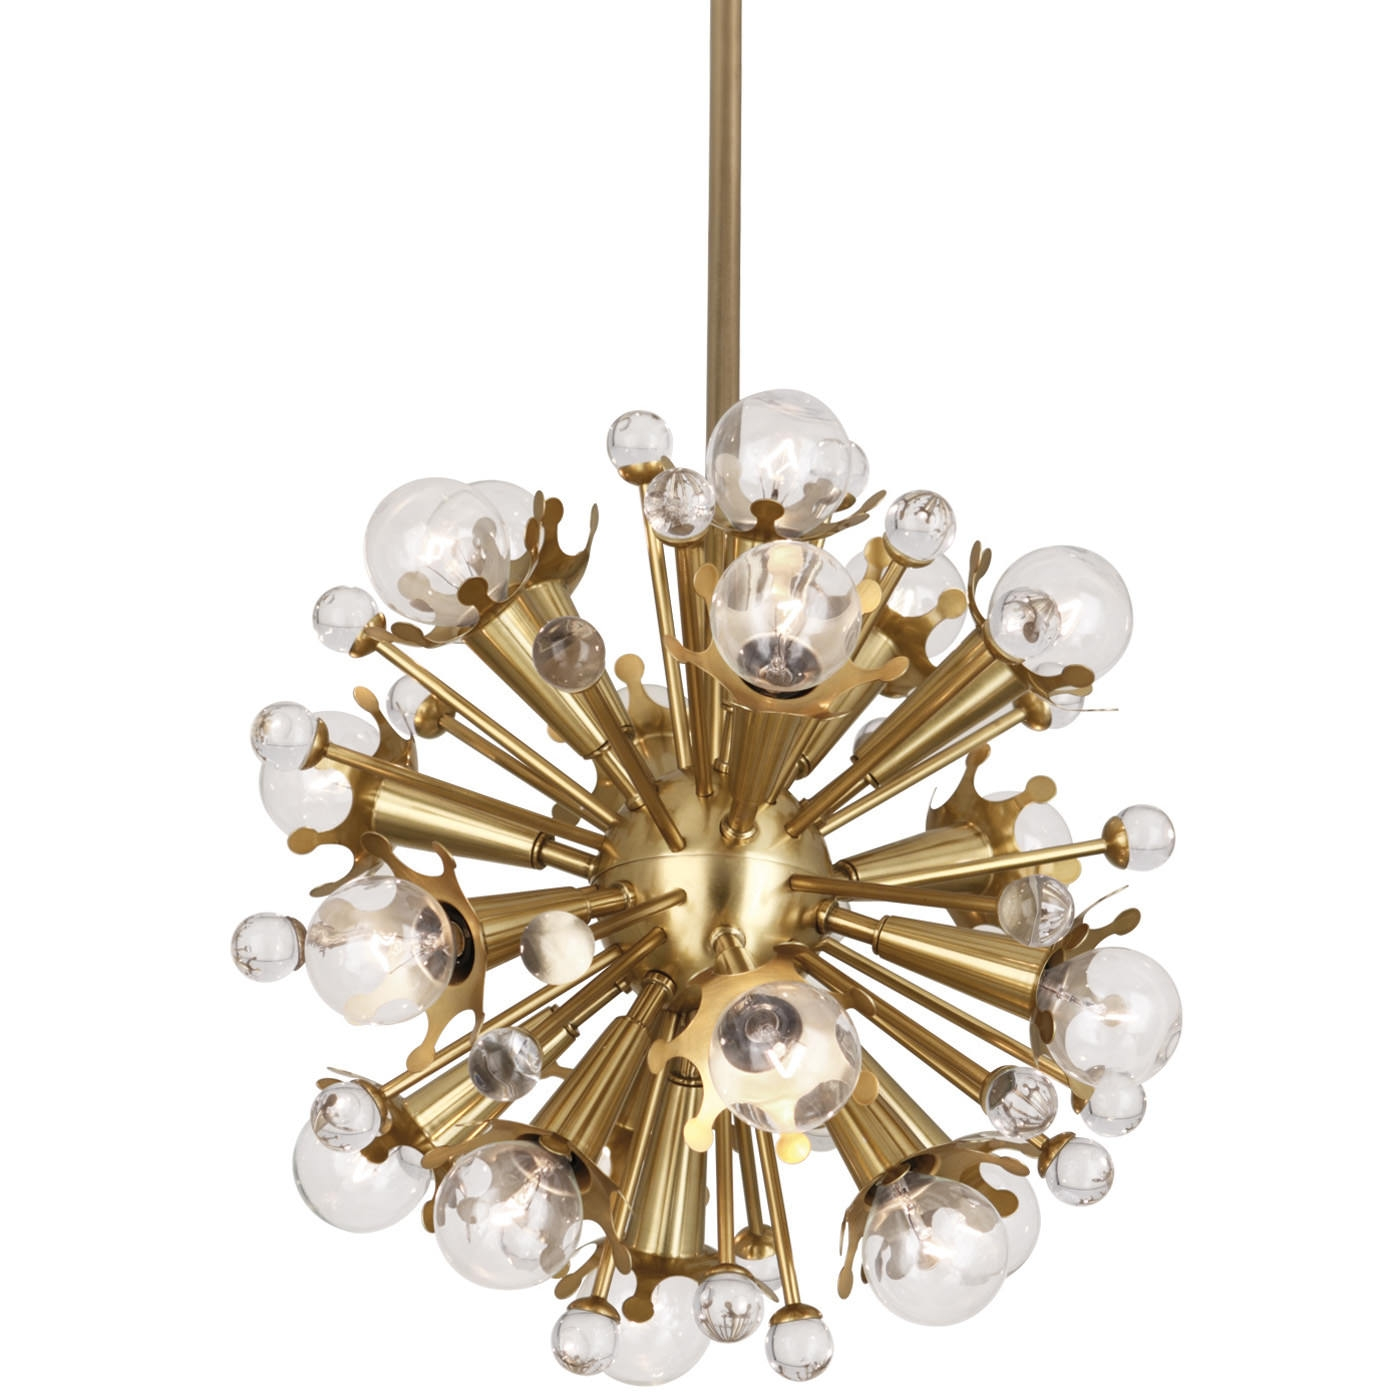 Mini Sputnik Chandelier Modern Lighting Jonathan Adler With Regard To Mini Sputnik Chandeliers (Image 17 of 25)